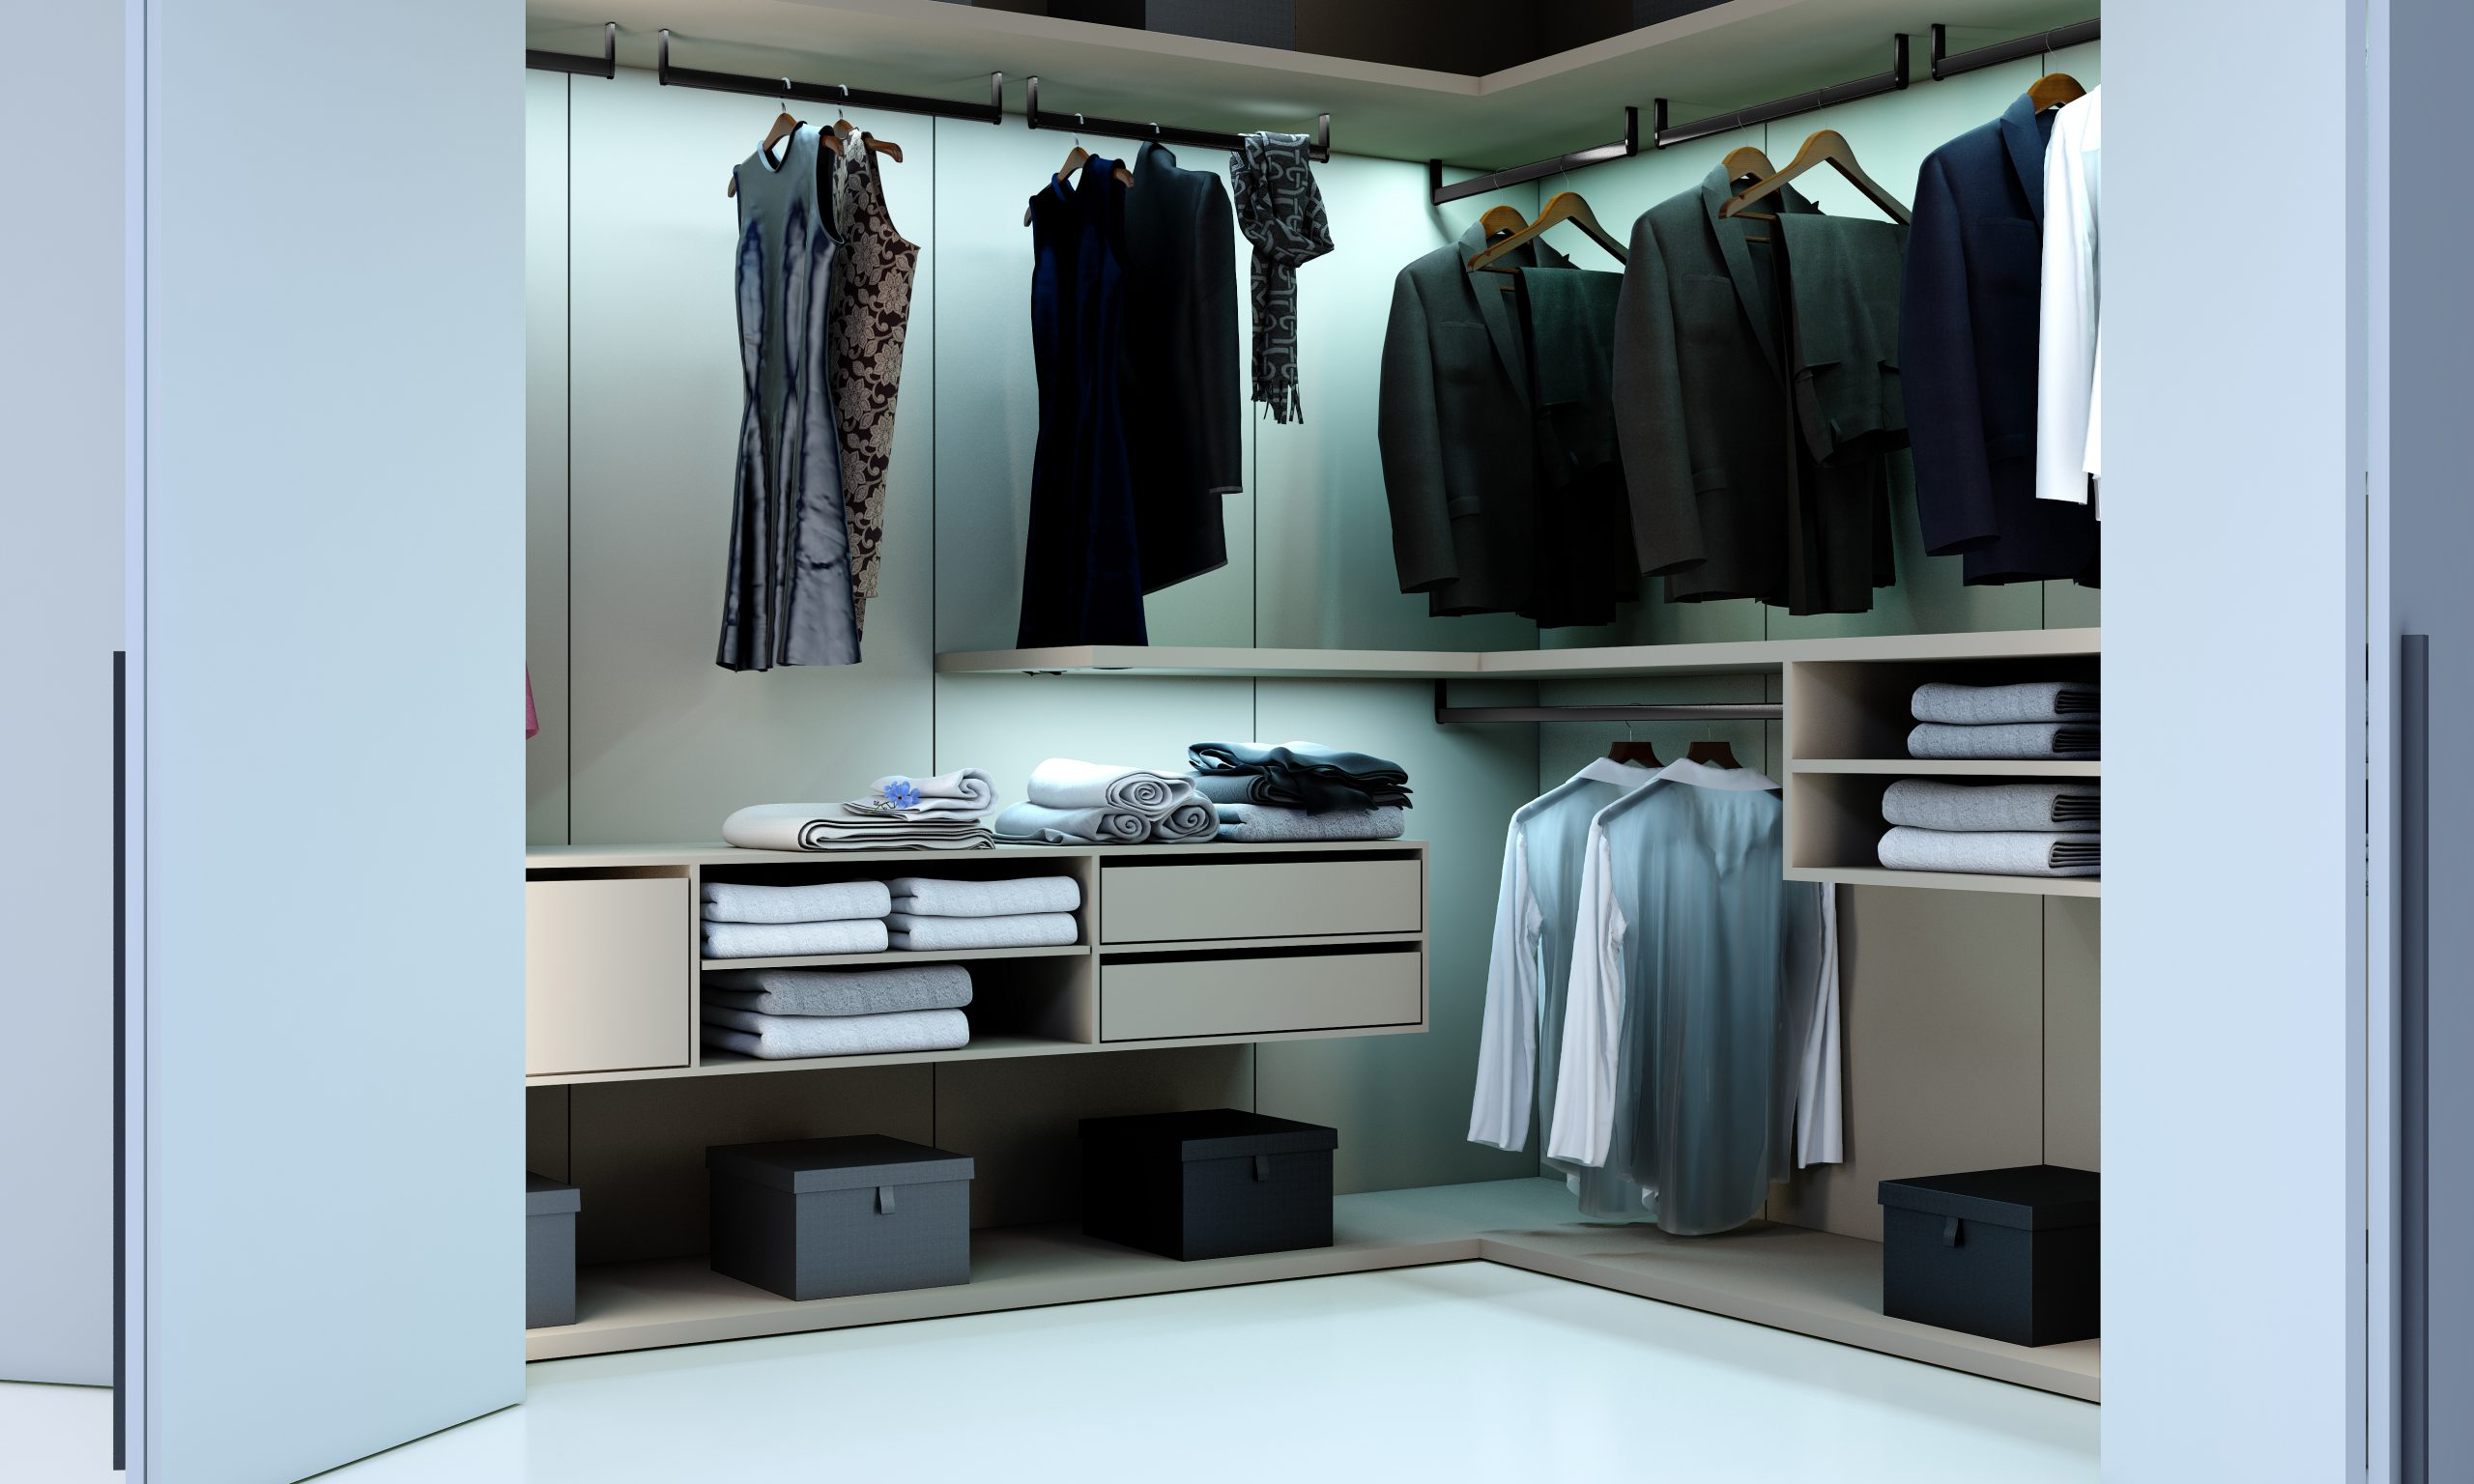 Bifold Small Walk in Wardrobe in Stone Grey Finish With Long Handles